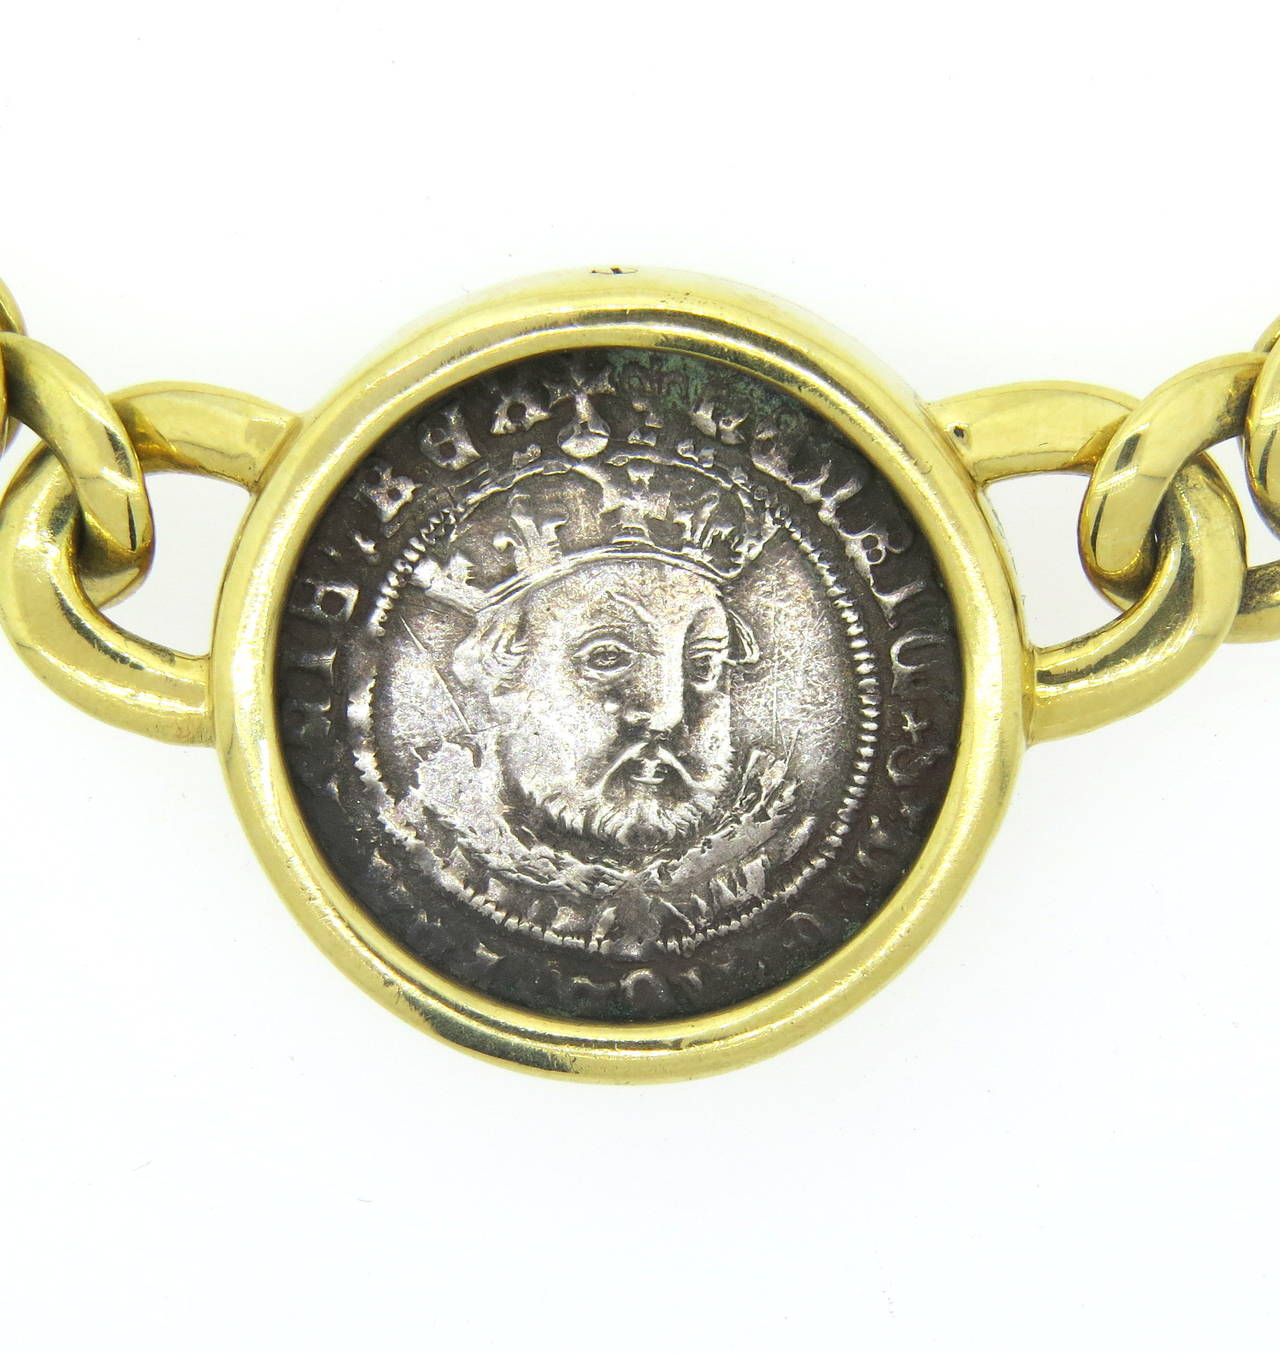 bulgari monete ancient coin henry viii gold necklace 3